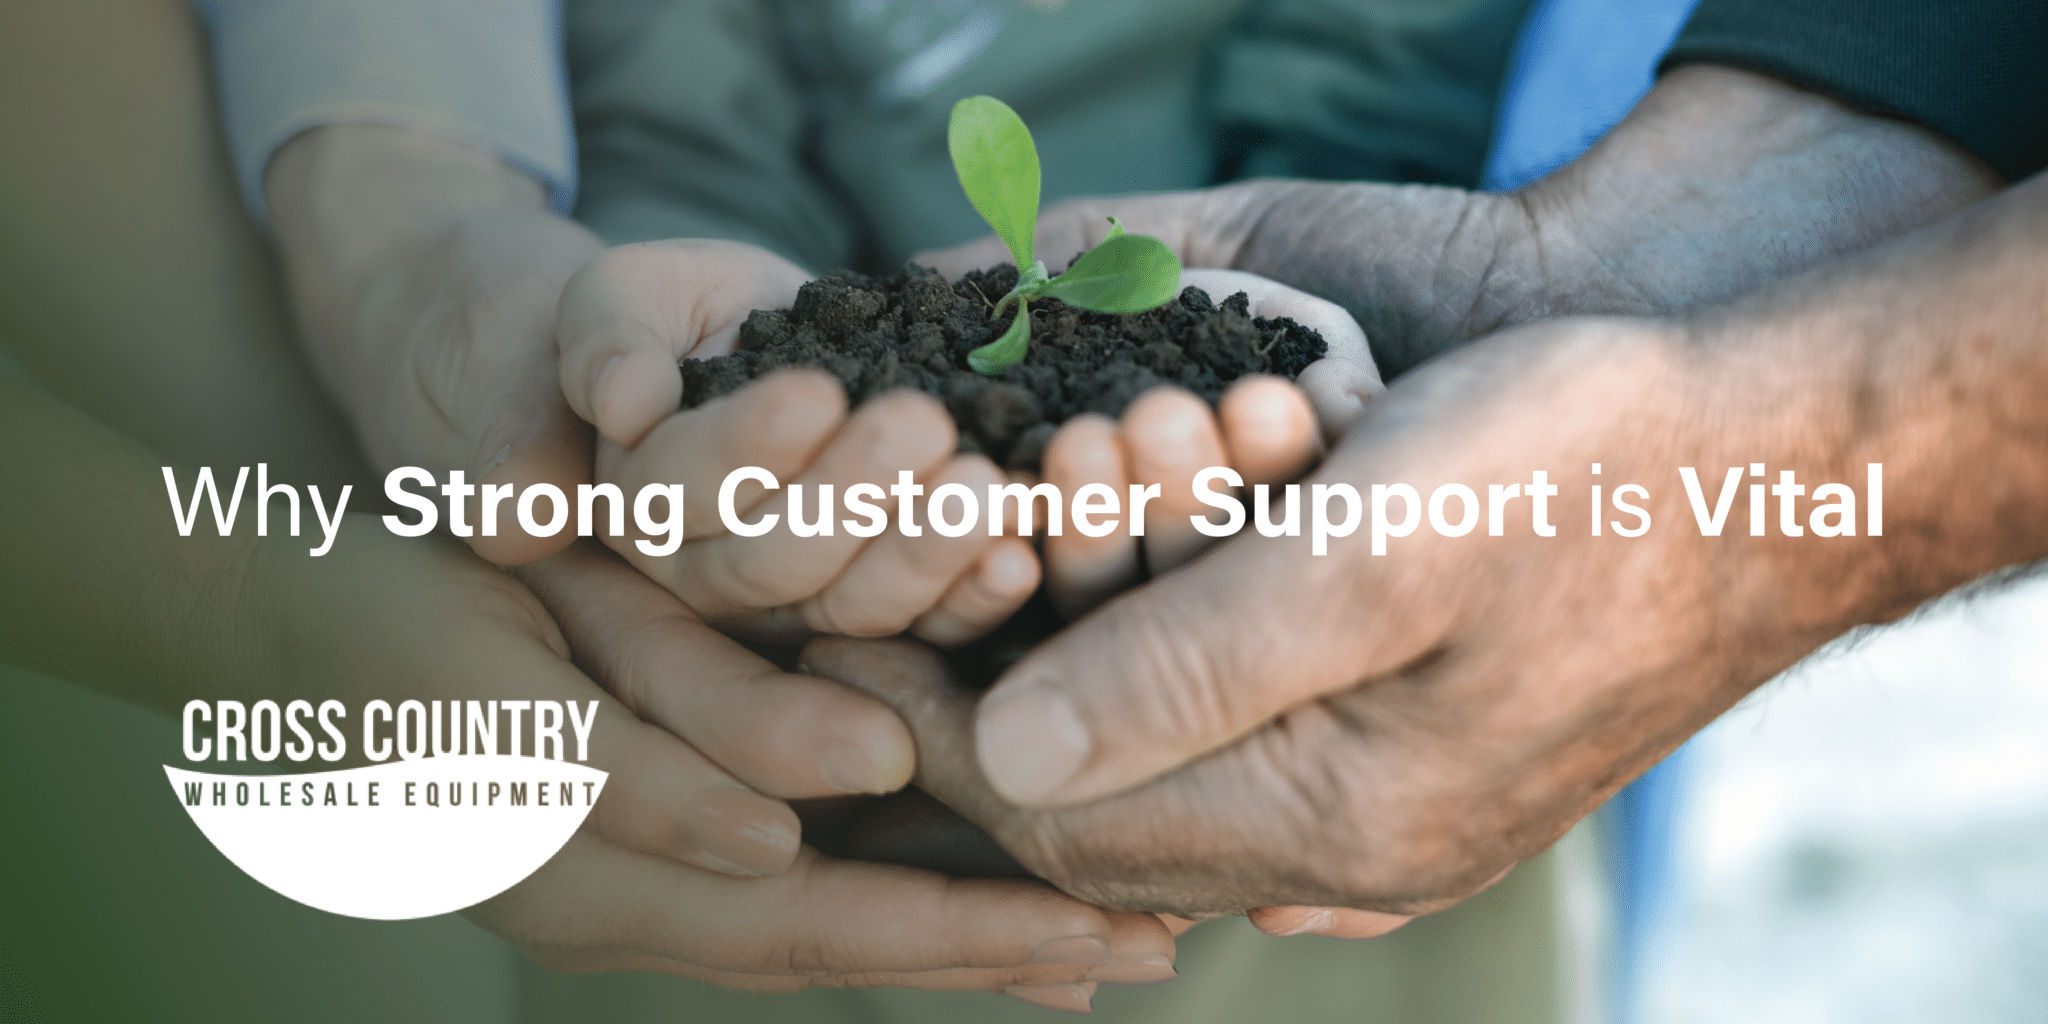 Why Strong Customer Support Is Vital